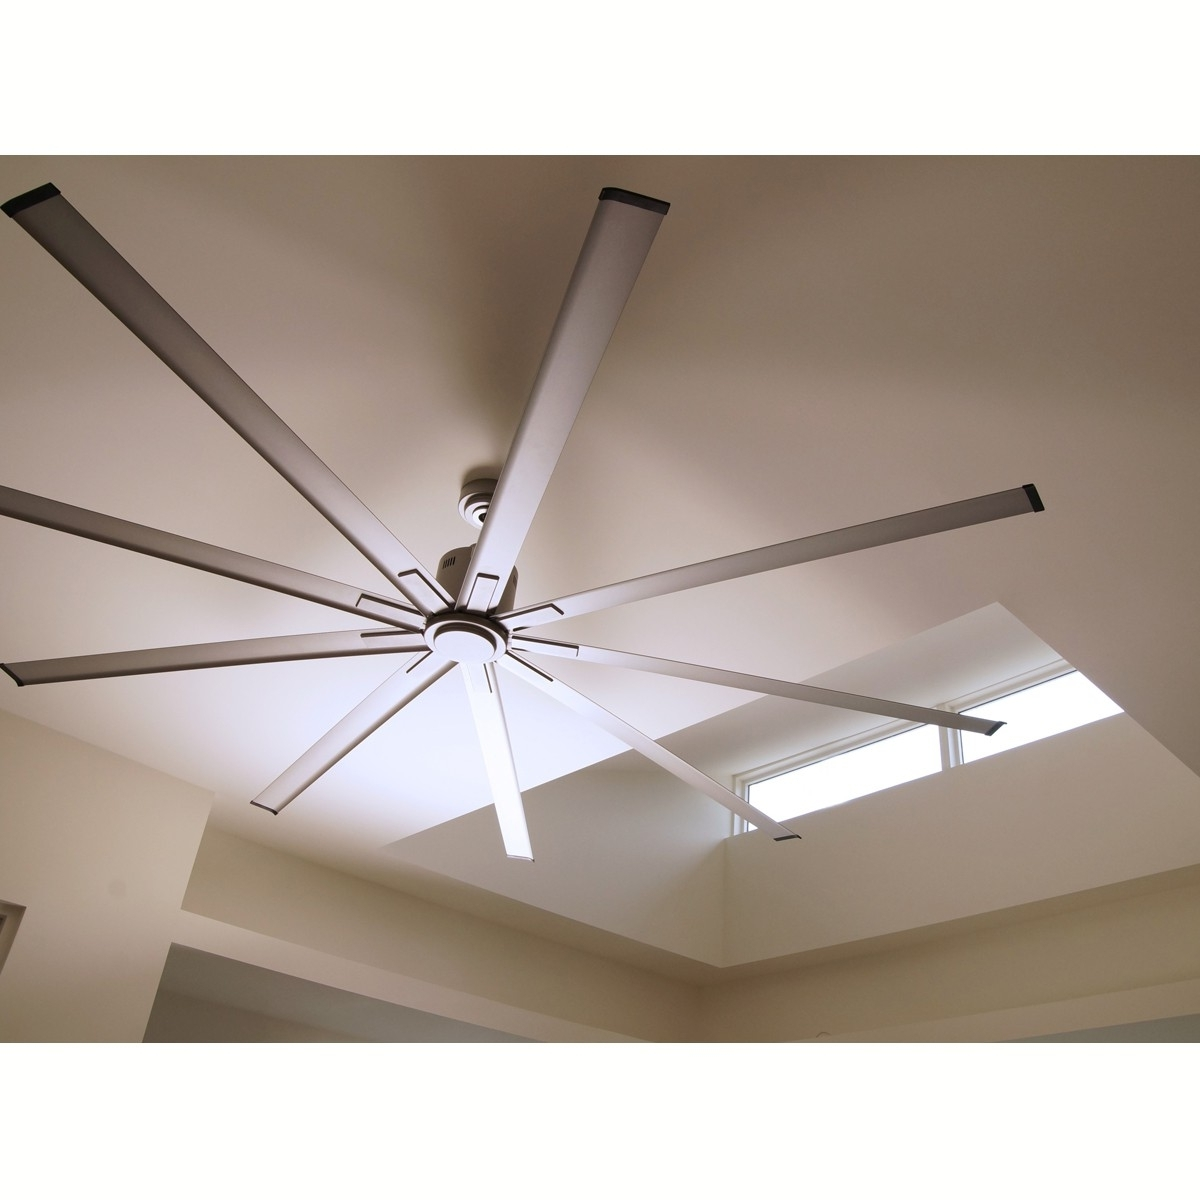 Recent Industrial Outdoor Ceiling Fans With Light Regarding 52 Industrial Ceiling Fans, Ceiling Fans With Lights : Light Hunter (View 14 of 20)